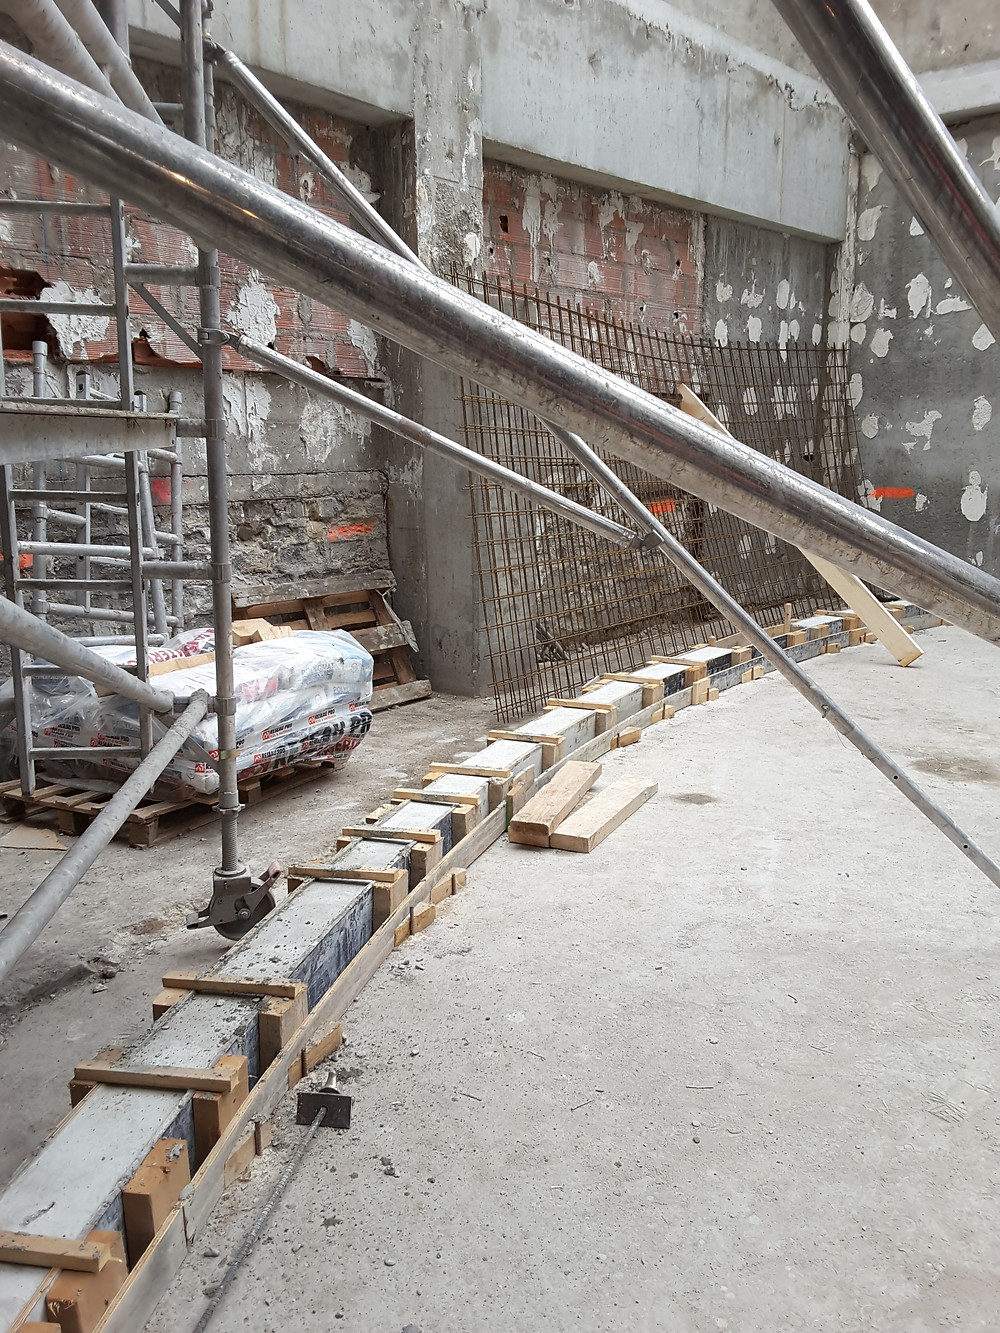 The masonry base for the new curved wooden structure